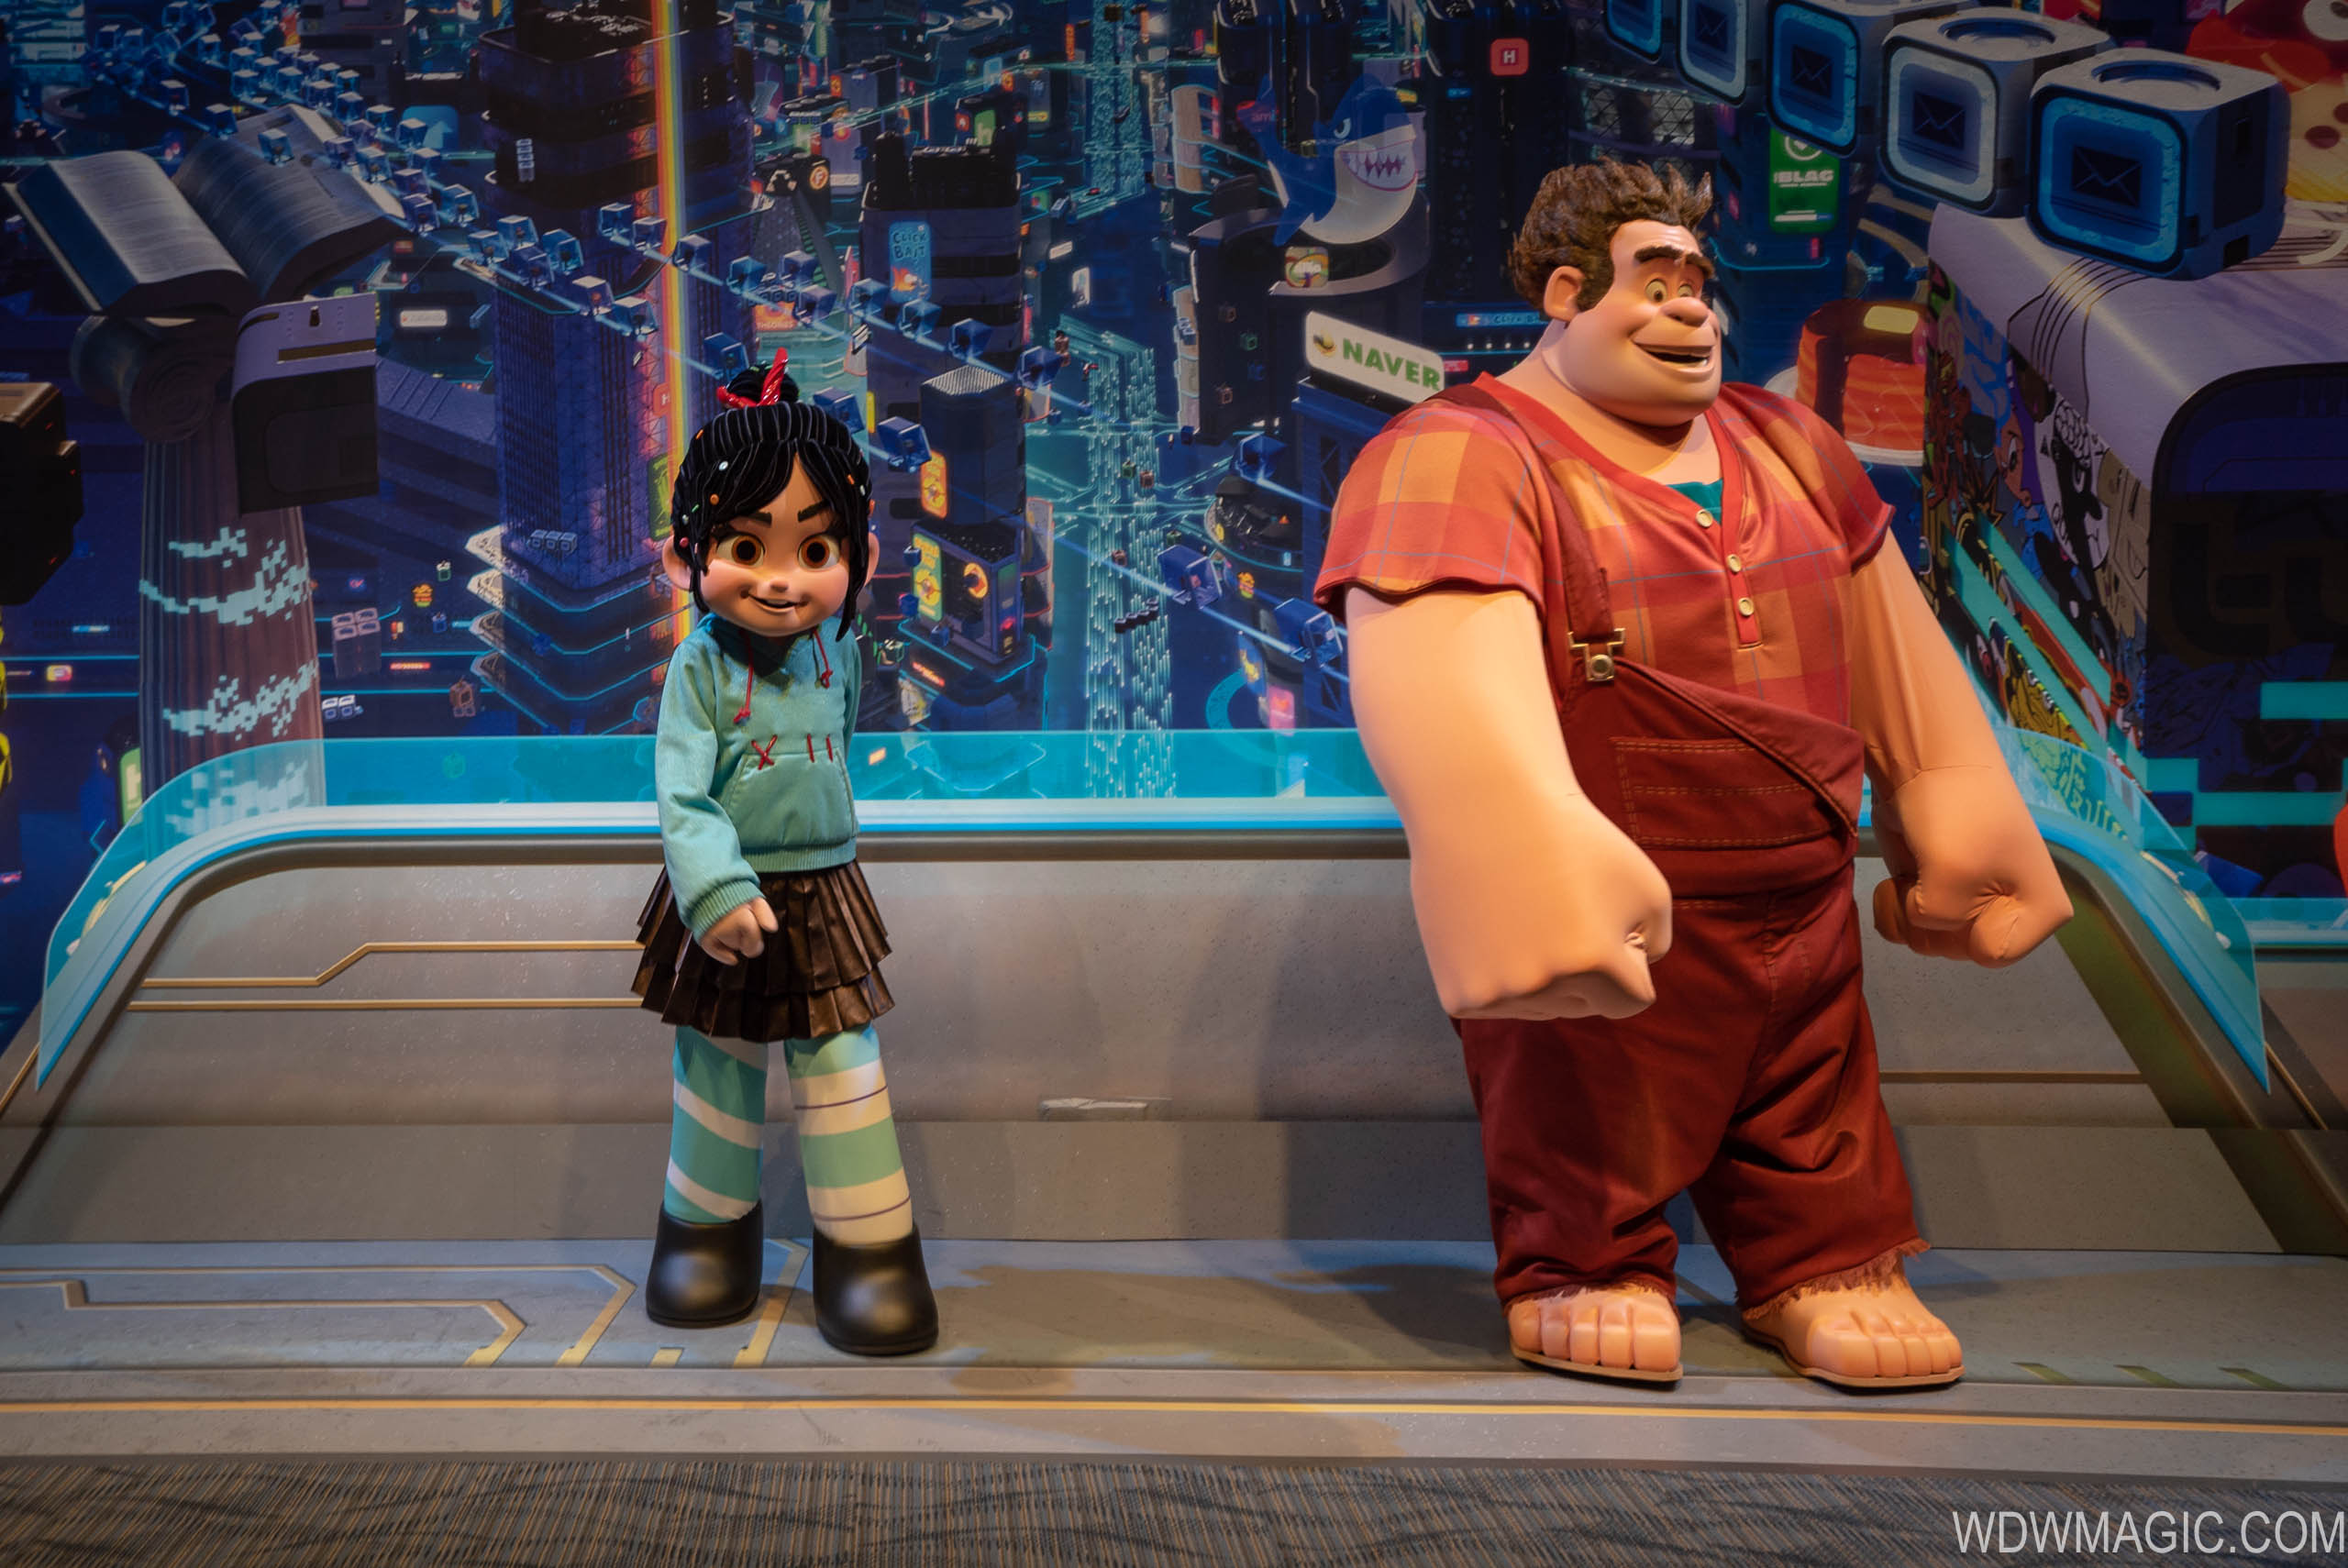 Wreck It Ralph and Vanellope meet and greet at Epcot